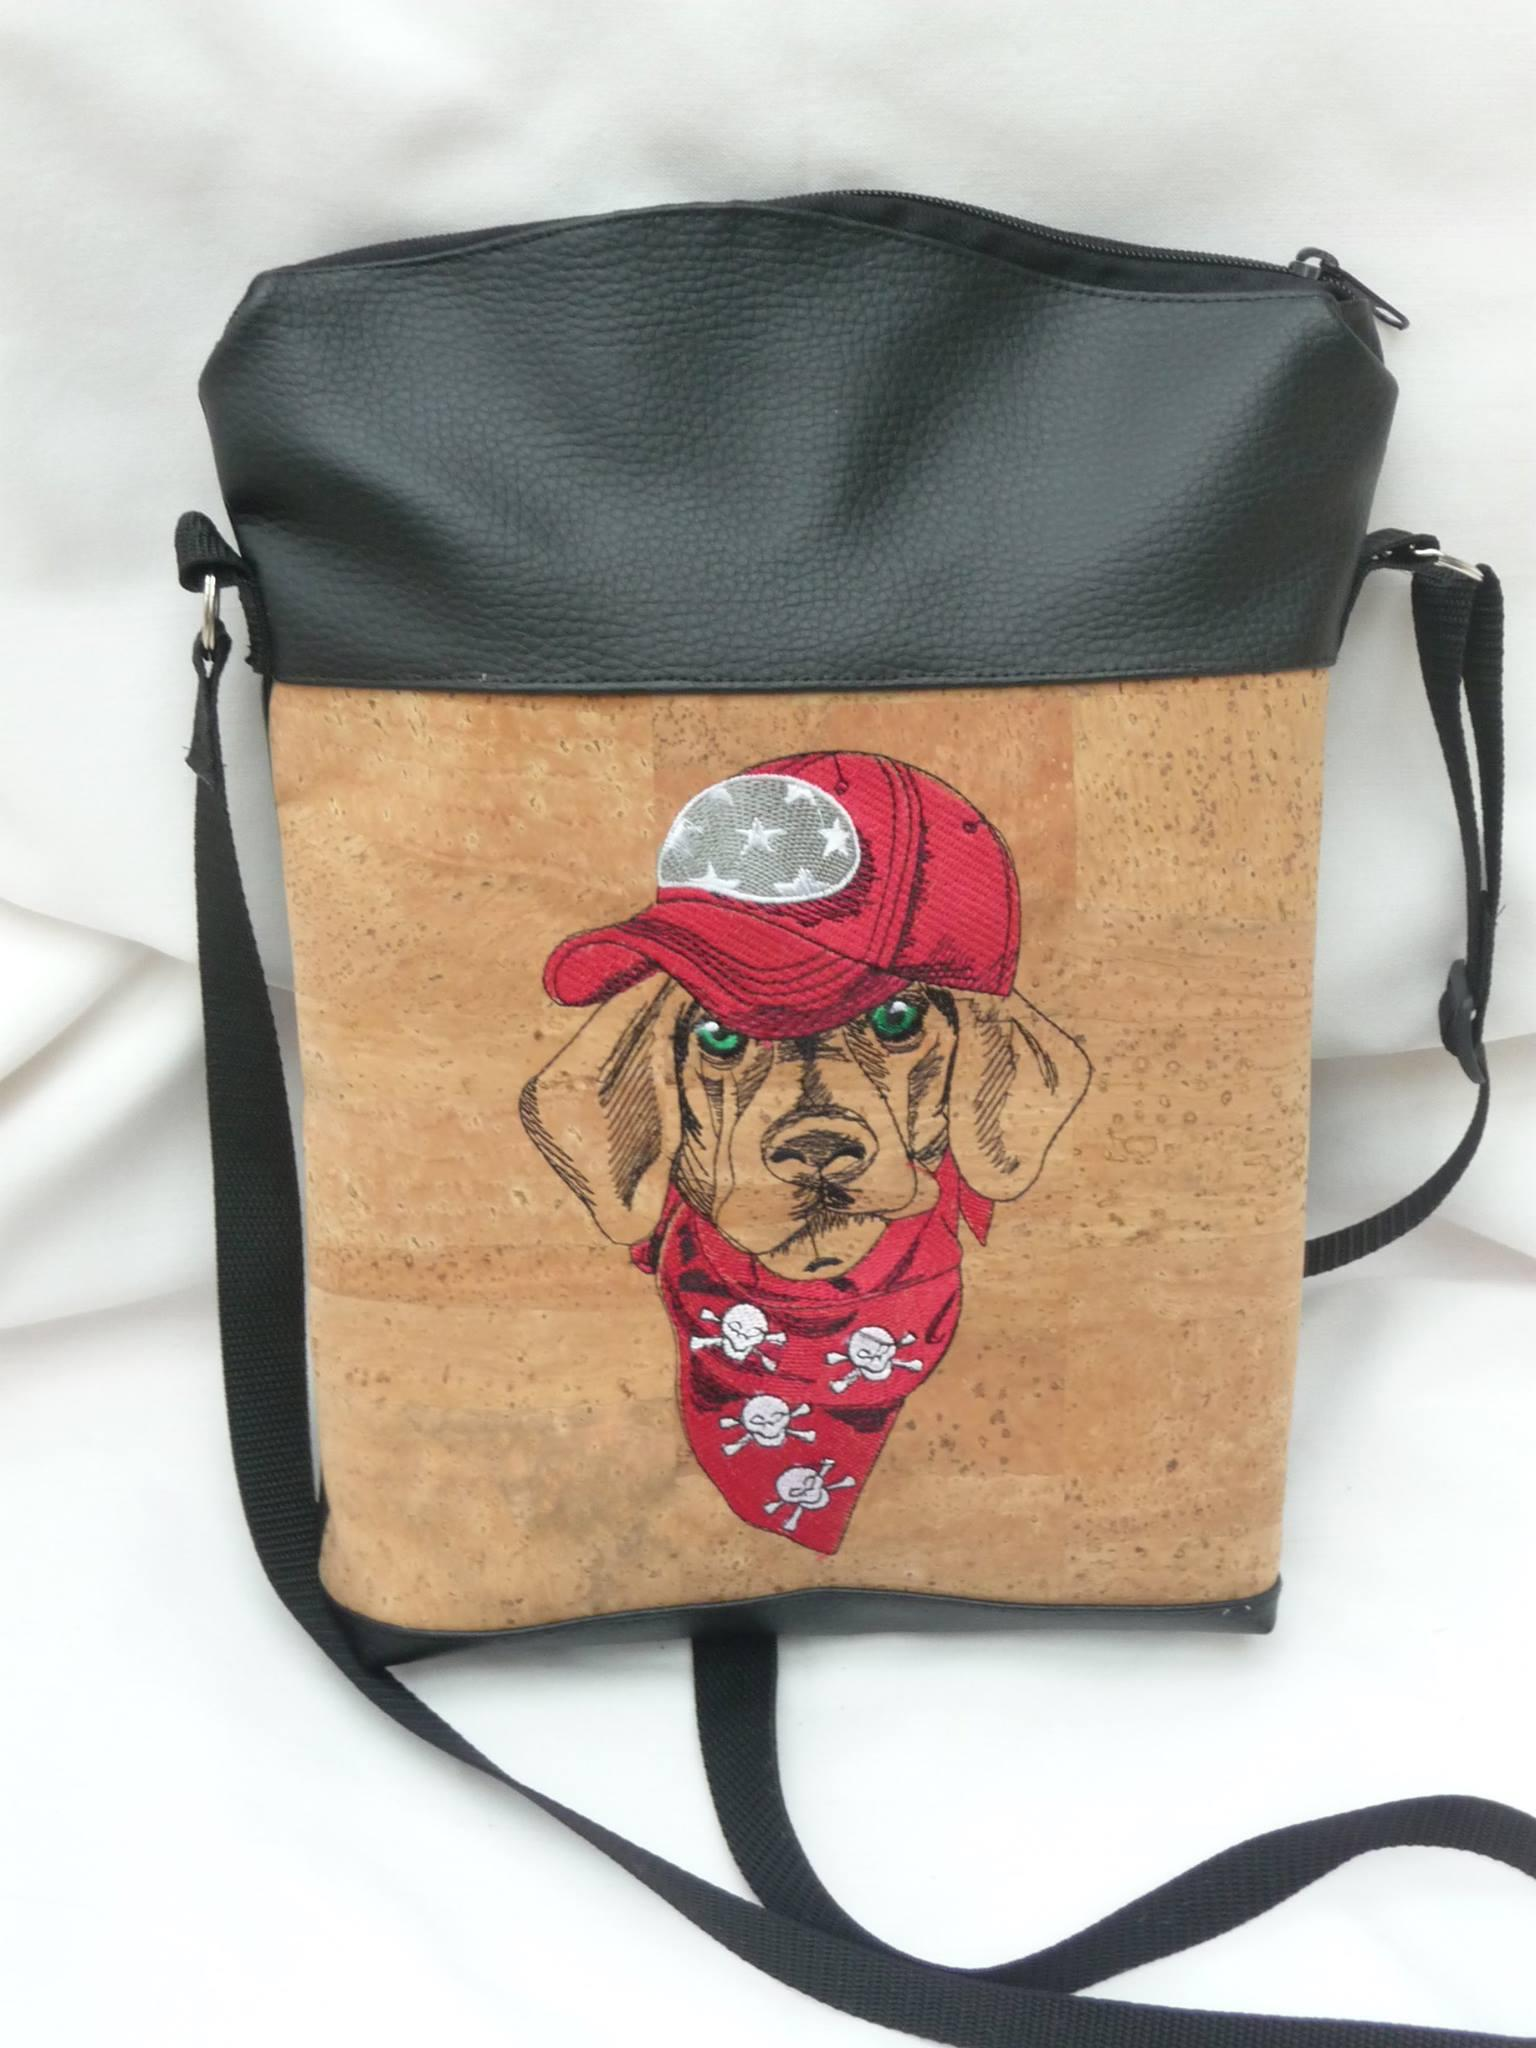 Handbag with Stylish dachshund machine embroidery design